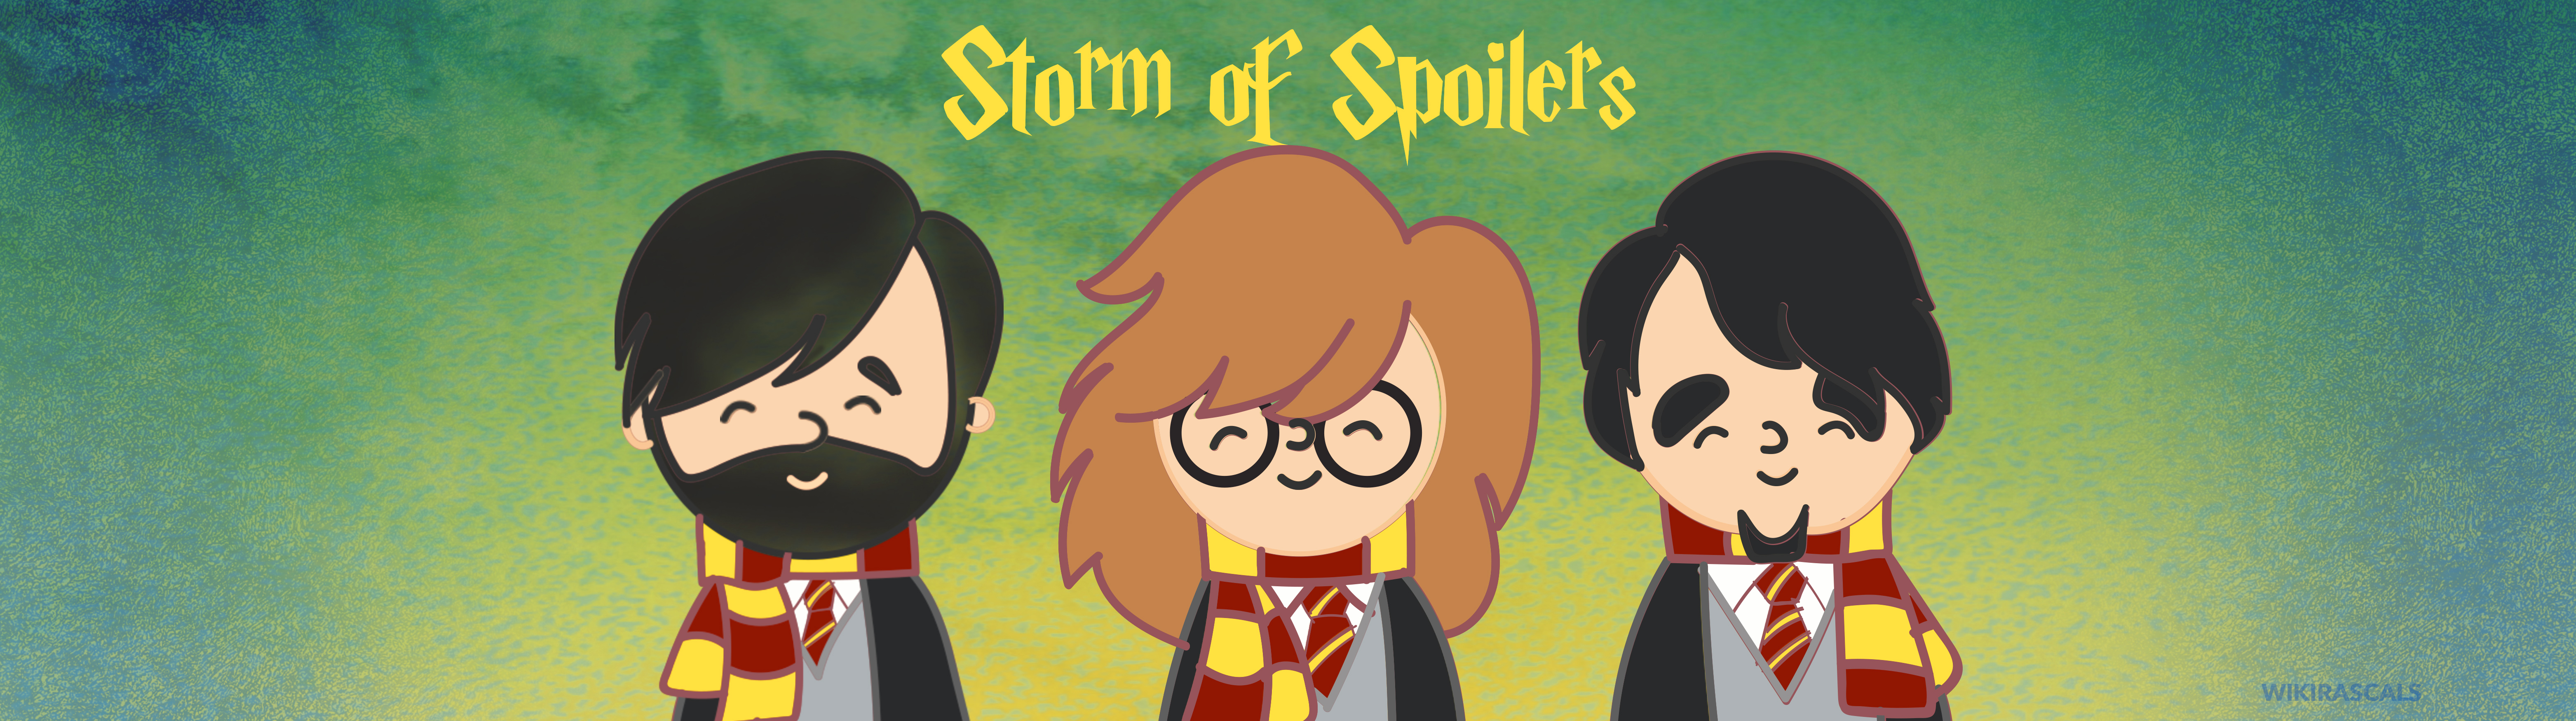 A Storm of Potters_Twitter Banner